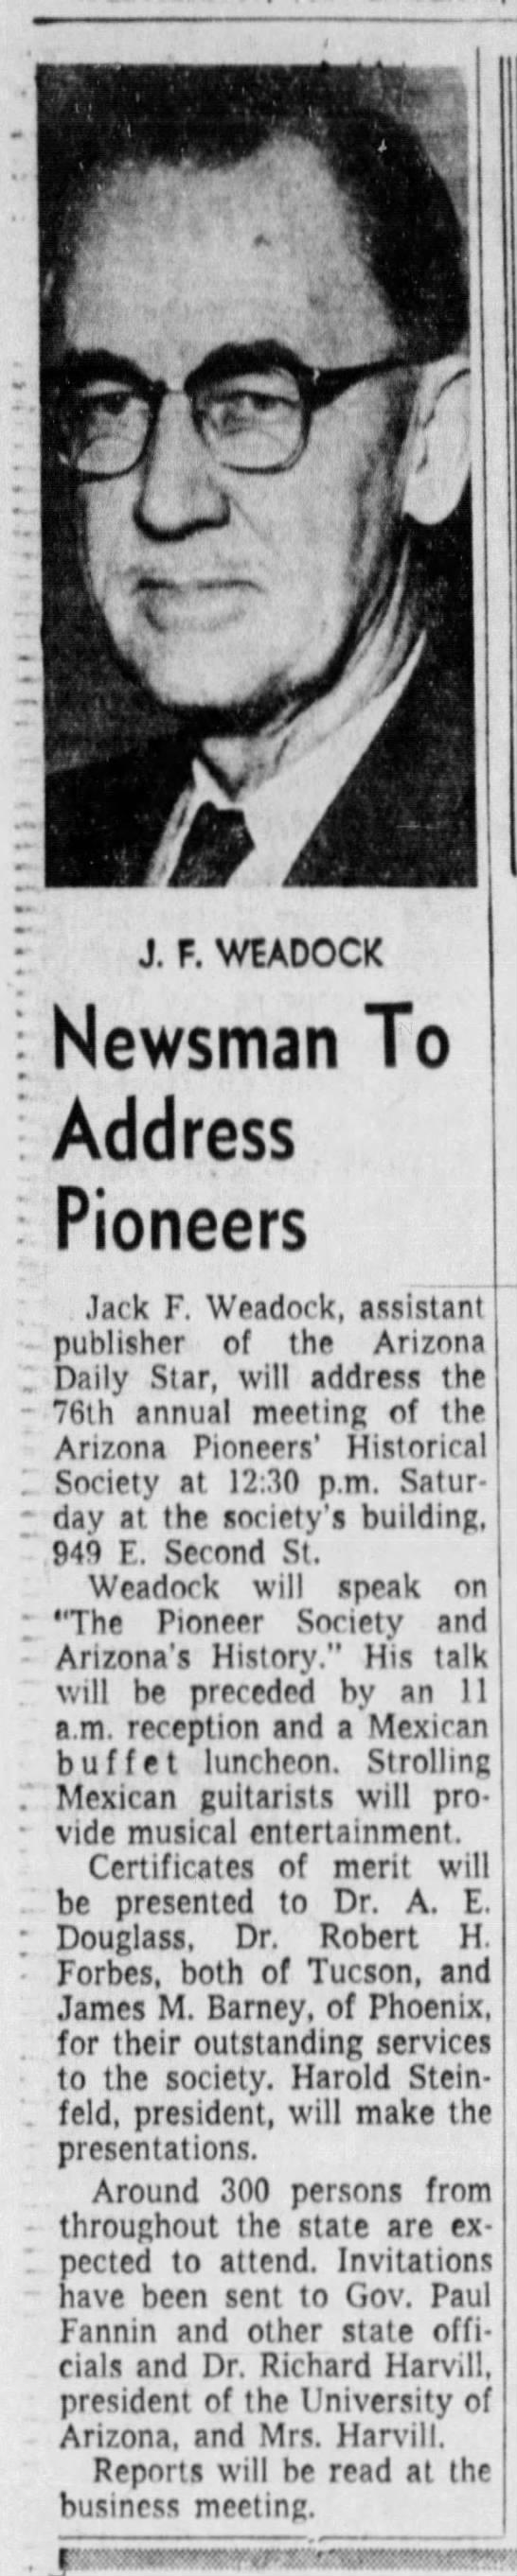 Jack to address the Arizona Pioneers Historical Society -